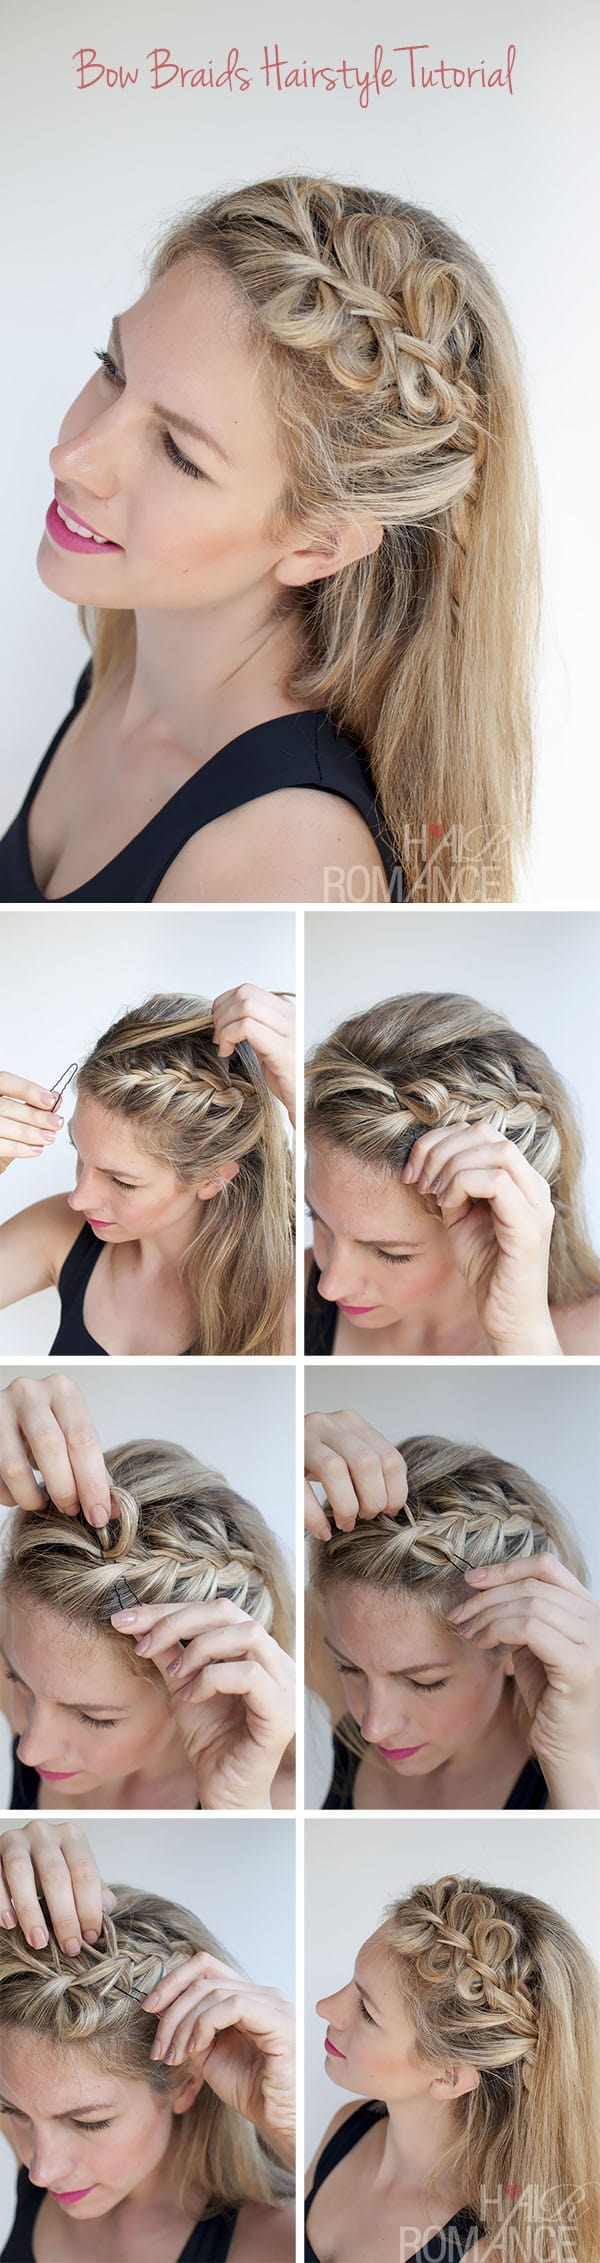 19 Fun Tutorials For Trendy Hairstyle